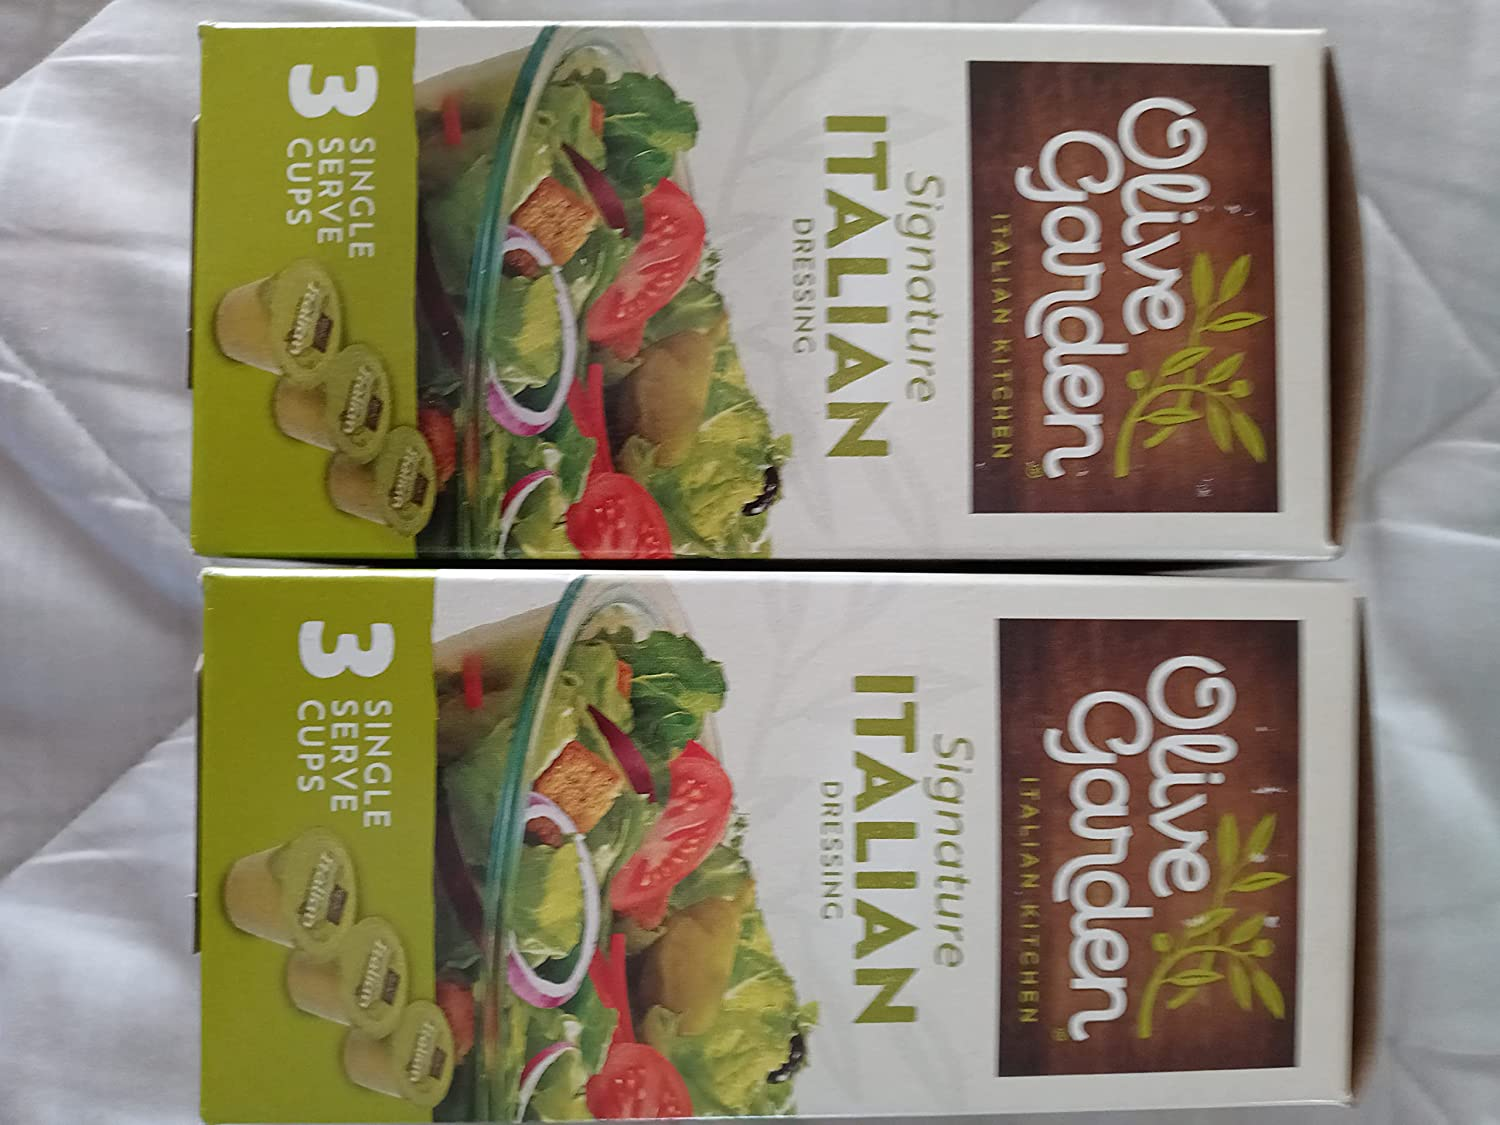 2 Boxes of Olive Garden Signature Italian Salad Dressing 3 Single-Serve Cups (6 1.7oz cups total)